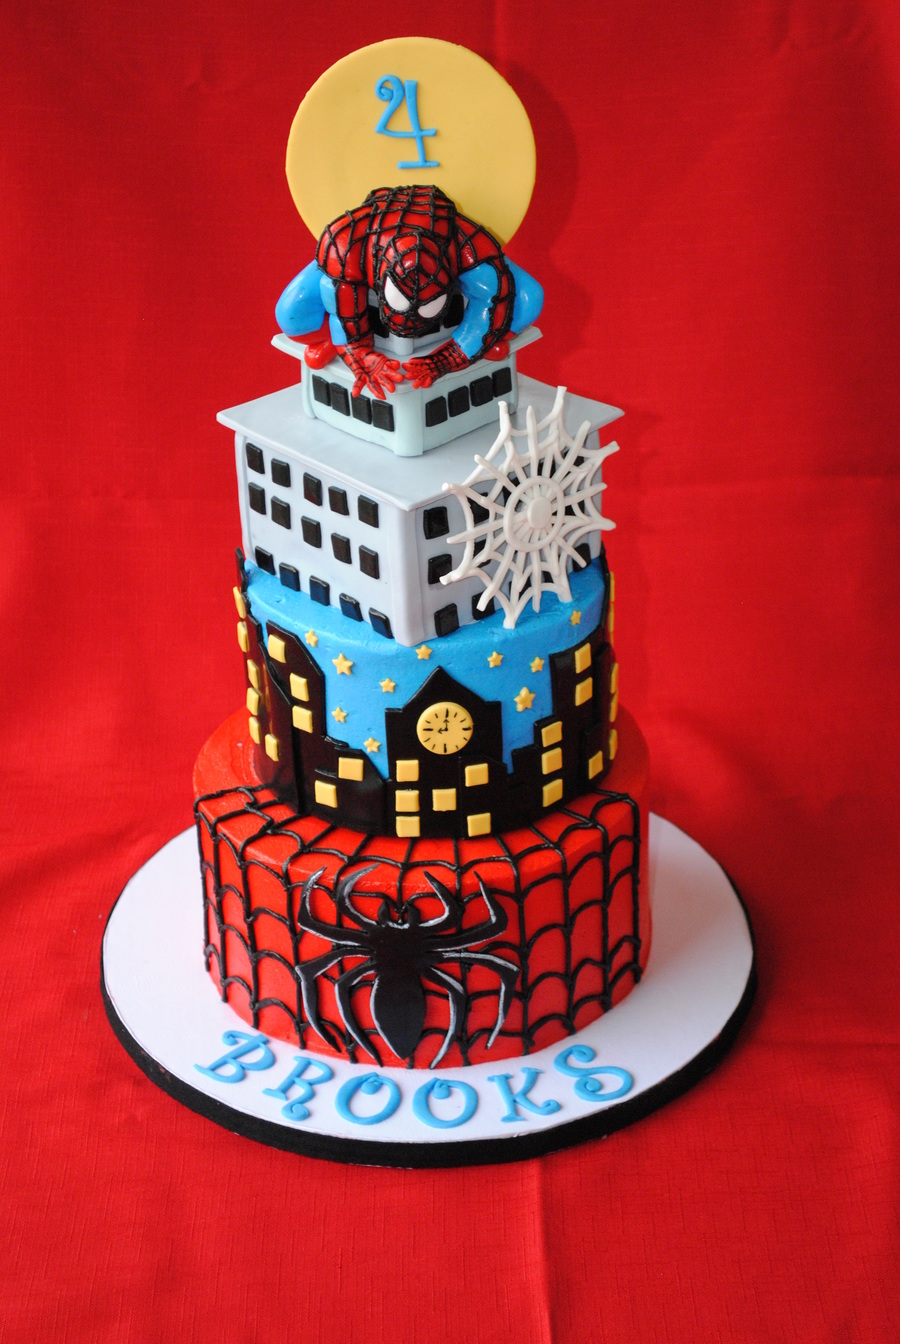 Black spiderman cakes - photo#16